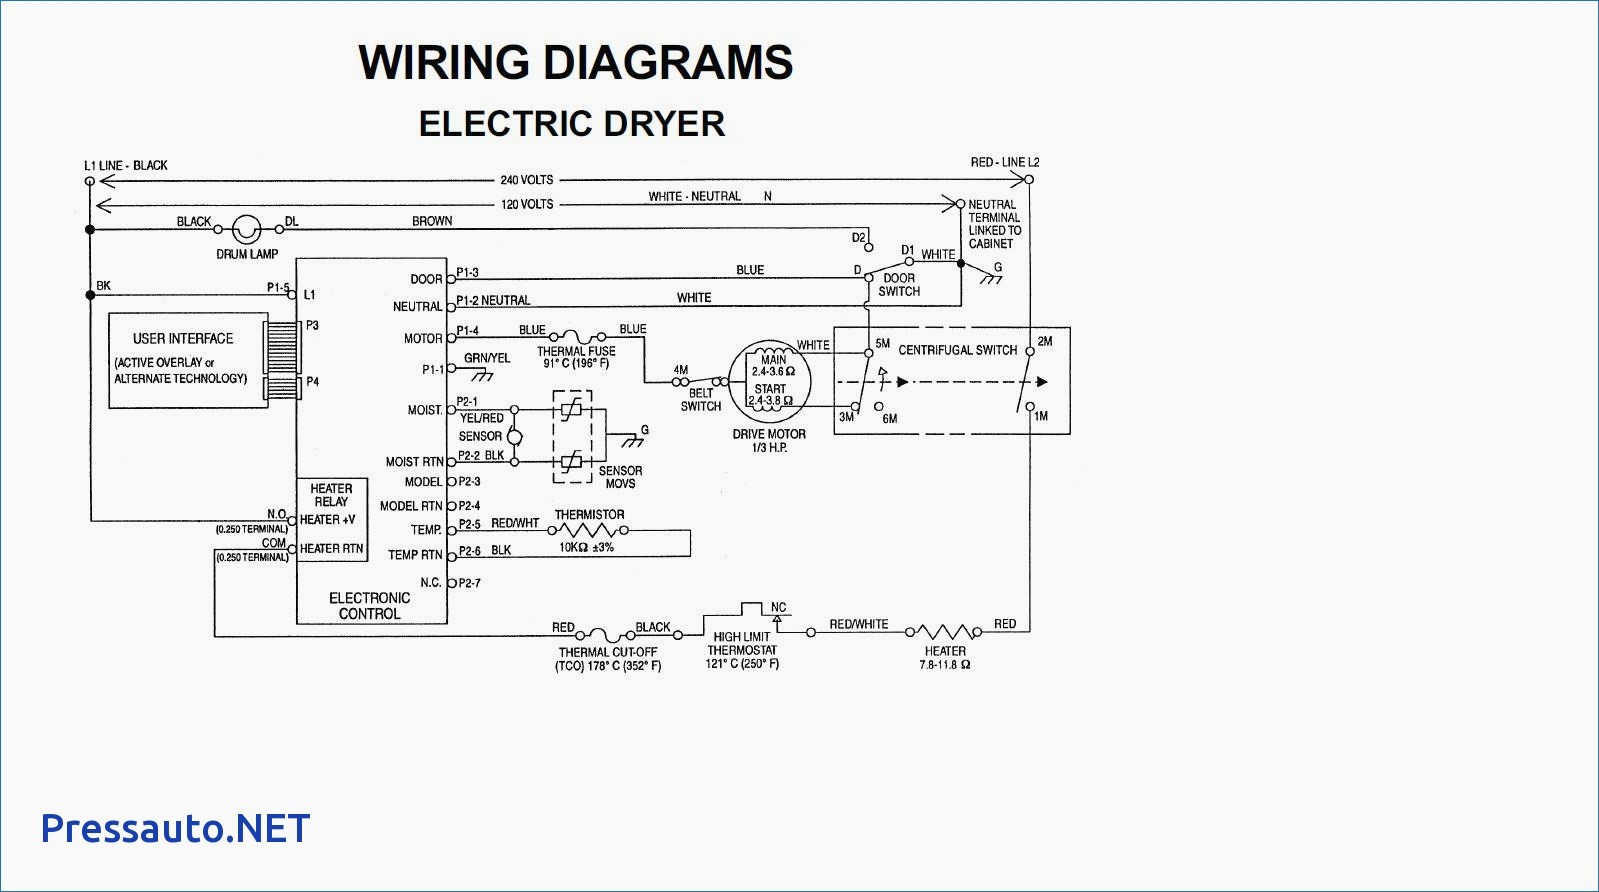 whirlpool duet dryer wiring diagram